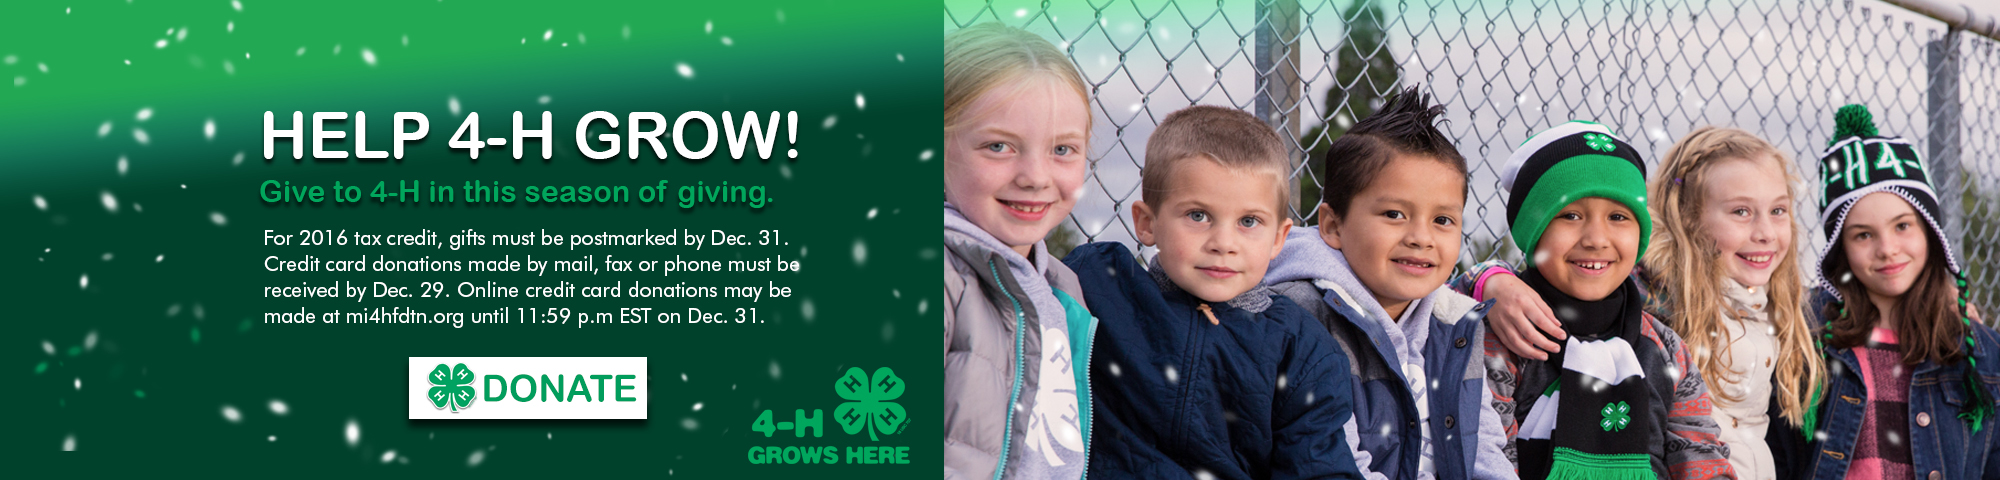 Help 4-H GROW! Give to 4-H in this season of giving.